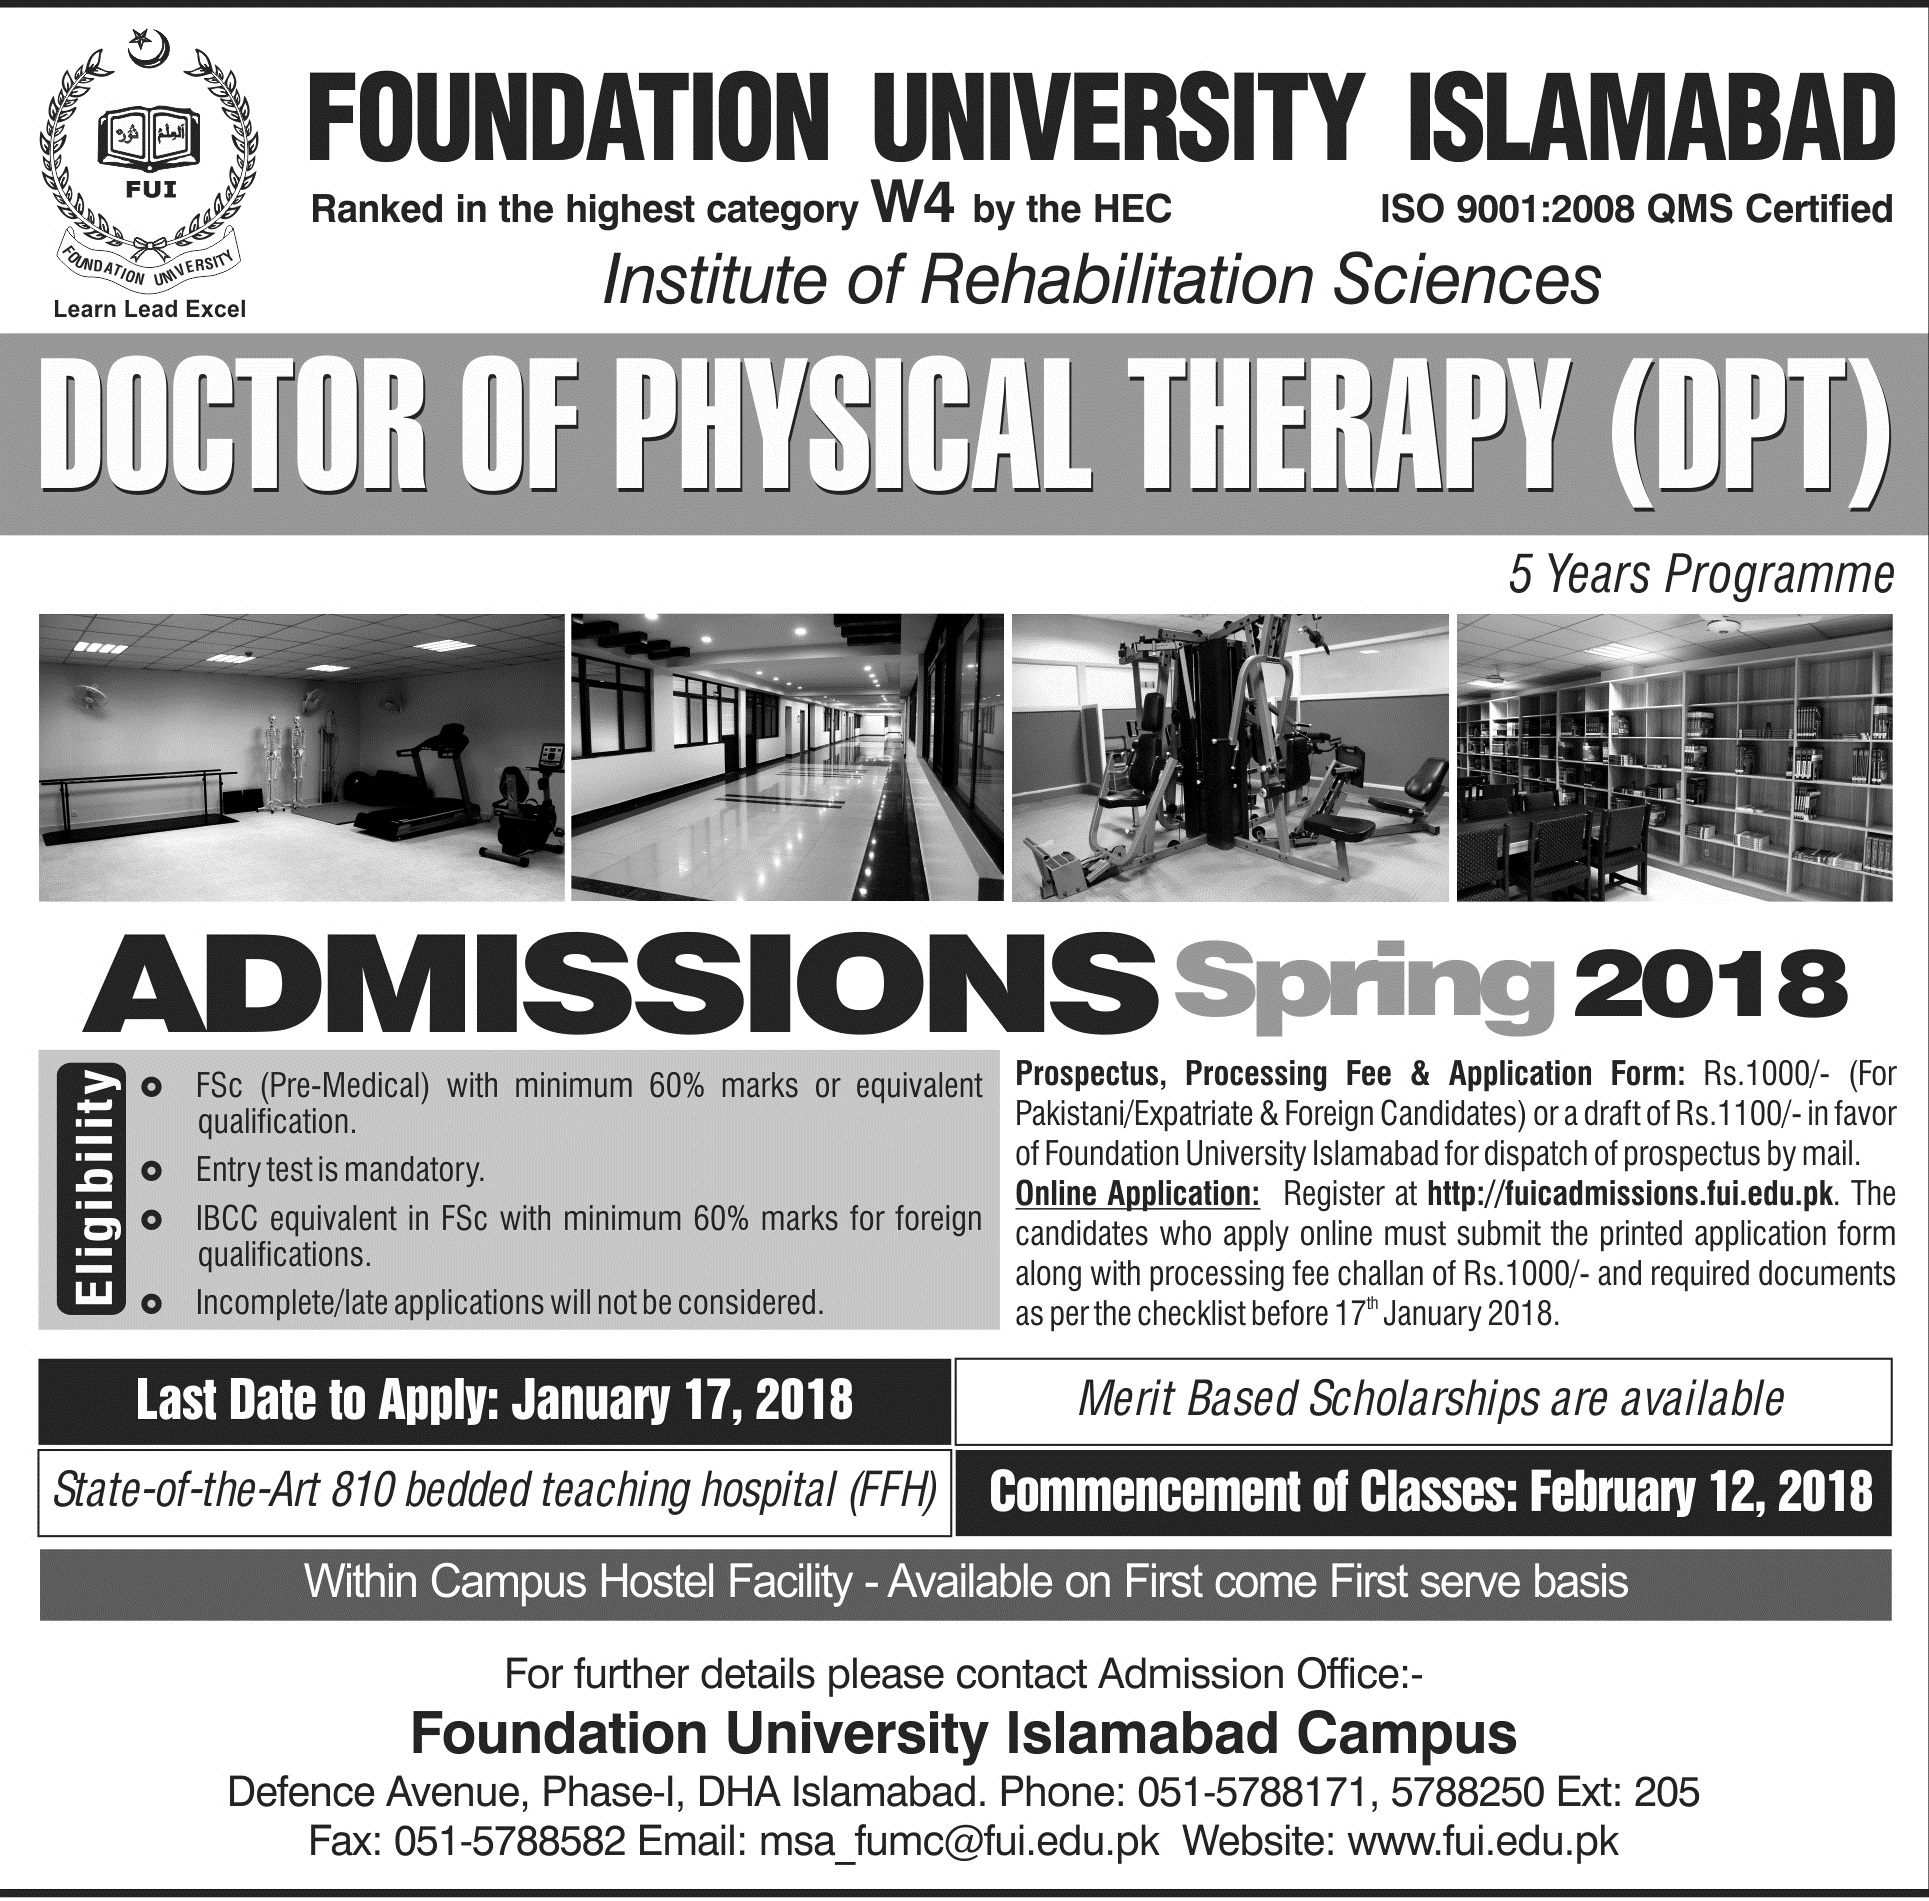 DPT Admissions Spring 2018